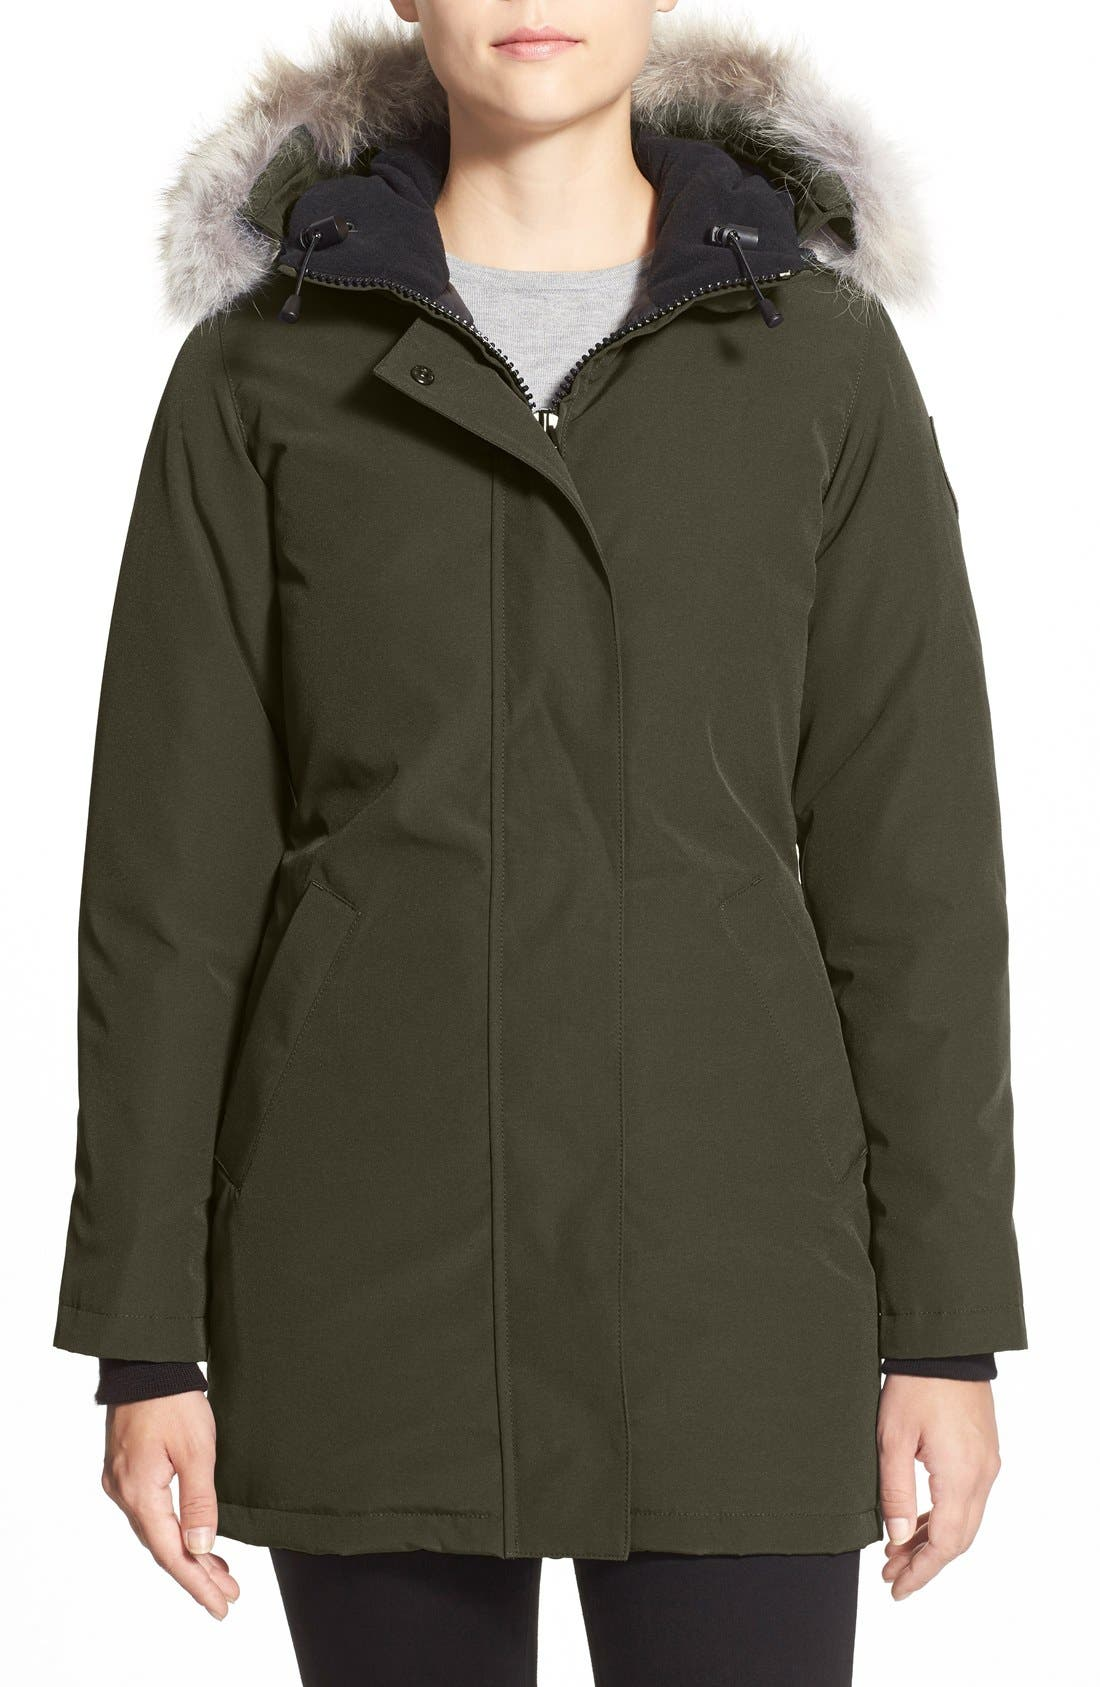 Canada Goose Victoria Down Parka With Genuine Coyote Fur Trim, (2-4) - Green